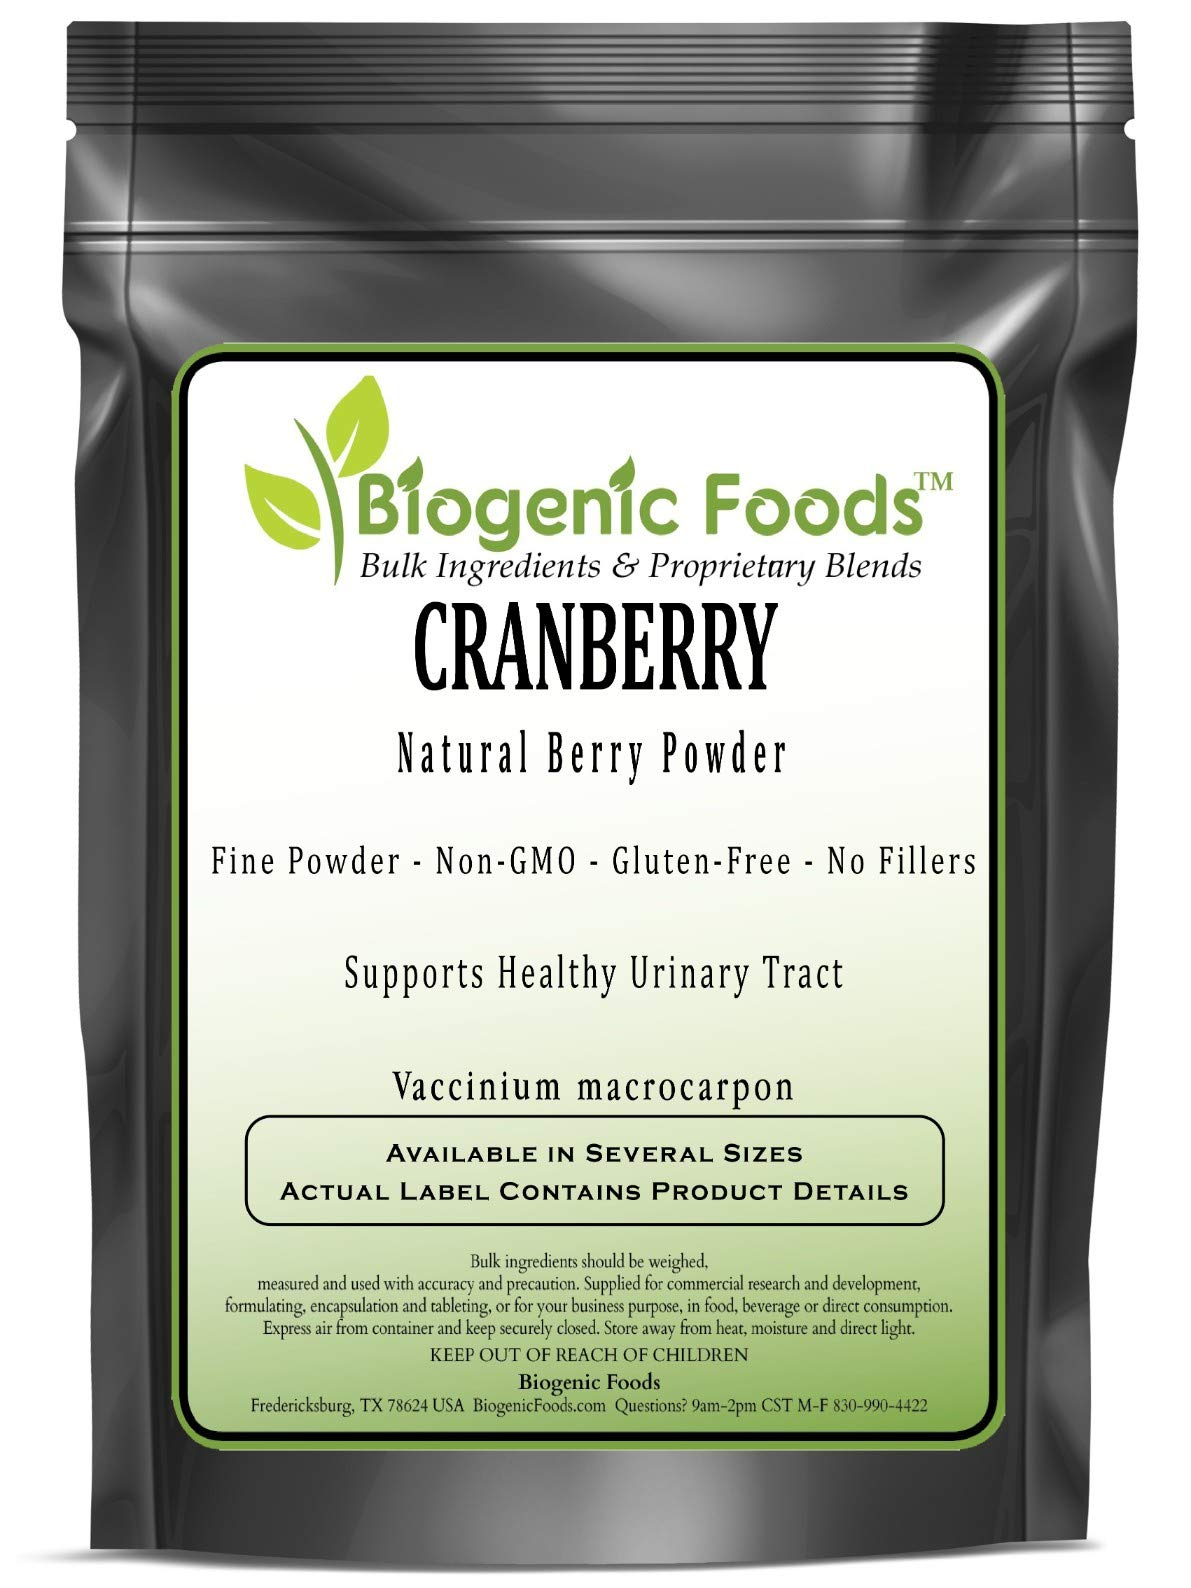 Cranberry - Natural Berry Powder (Vaccinium macrocarpon), 5 kg